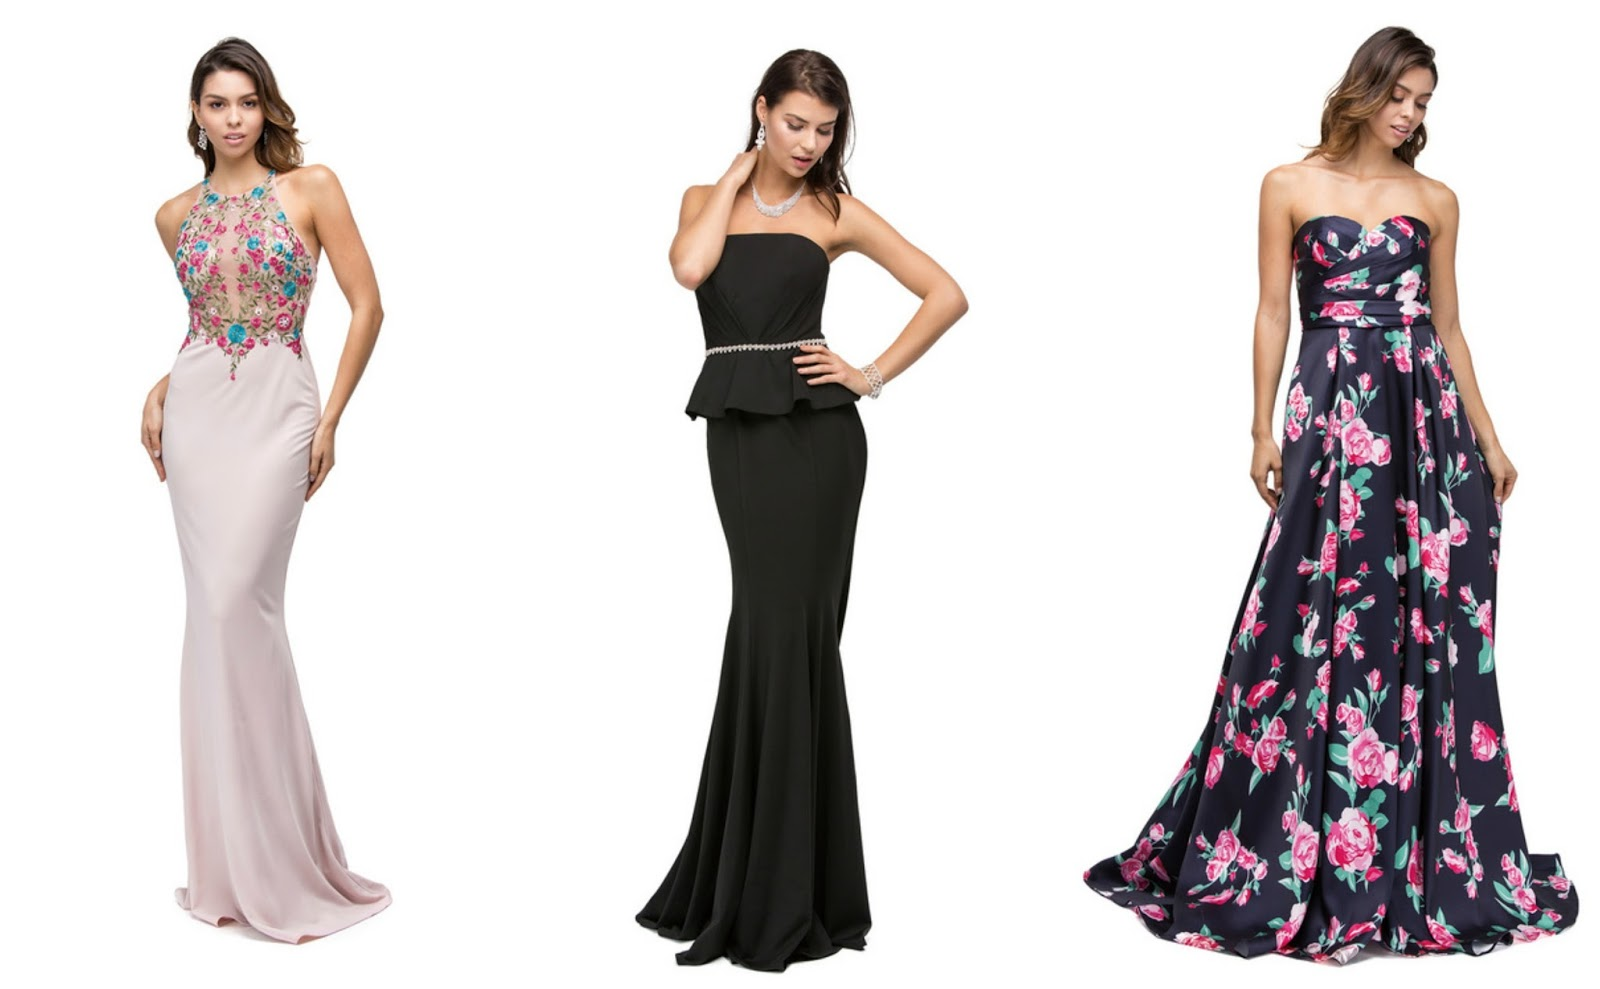 Latest Celebrity Fashion And Style Tips Tips To Find The Best Prom